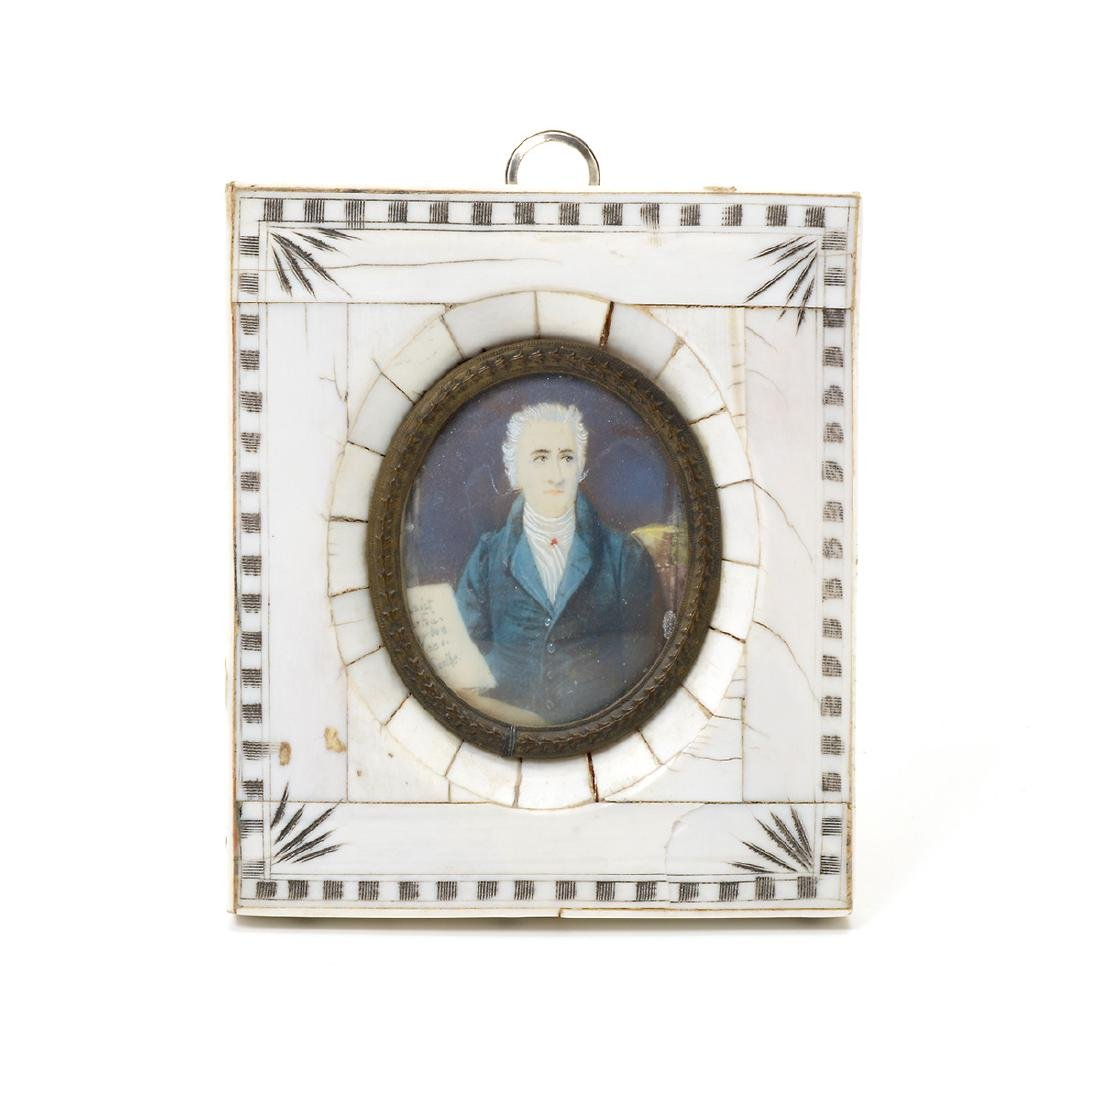 Nine Miniature Portraits of Men Including Blue Boy - 5